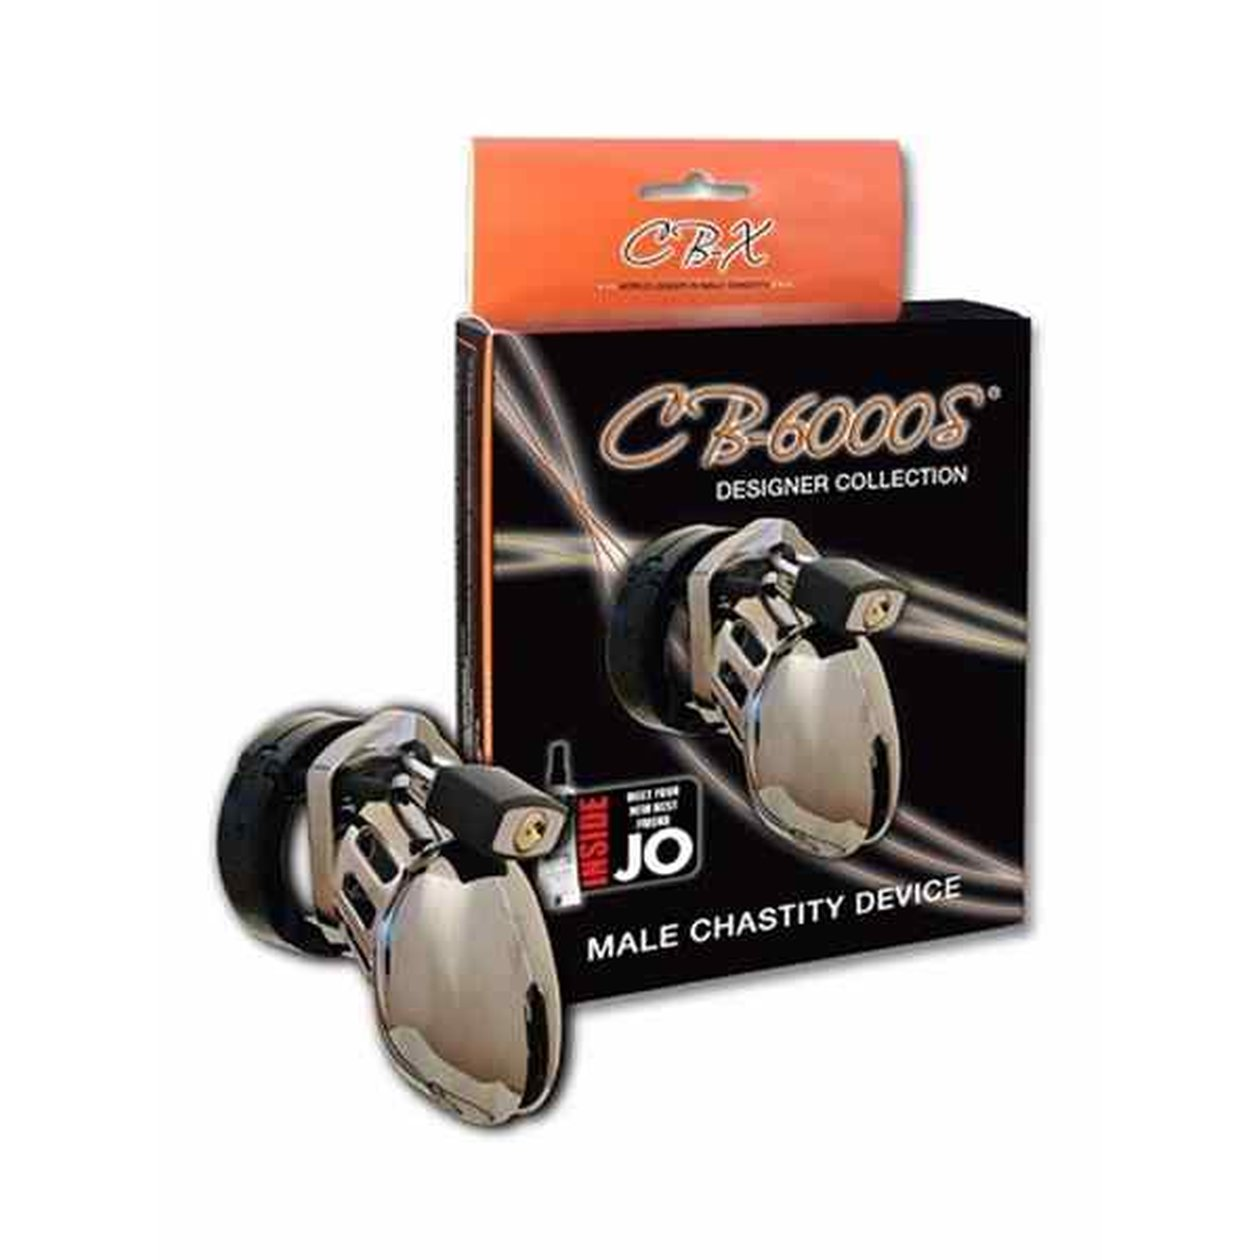 CB-X CB-6000S Chastity Cage Chrome Small